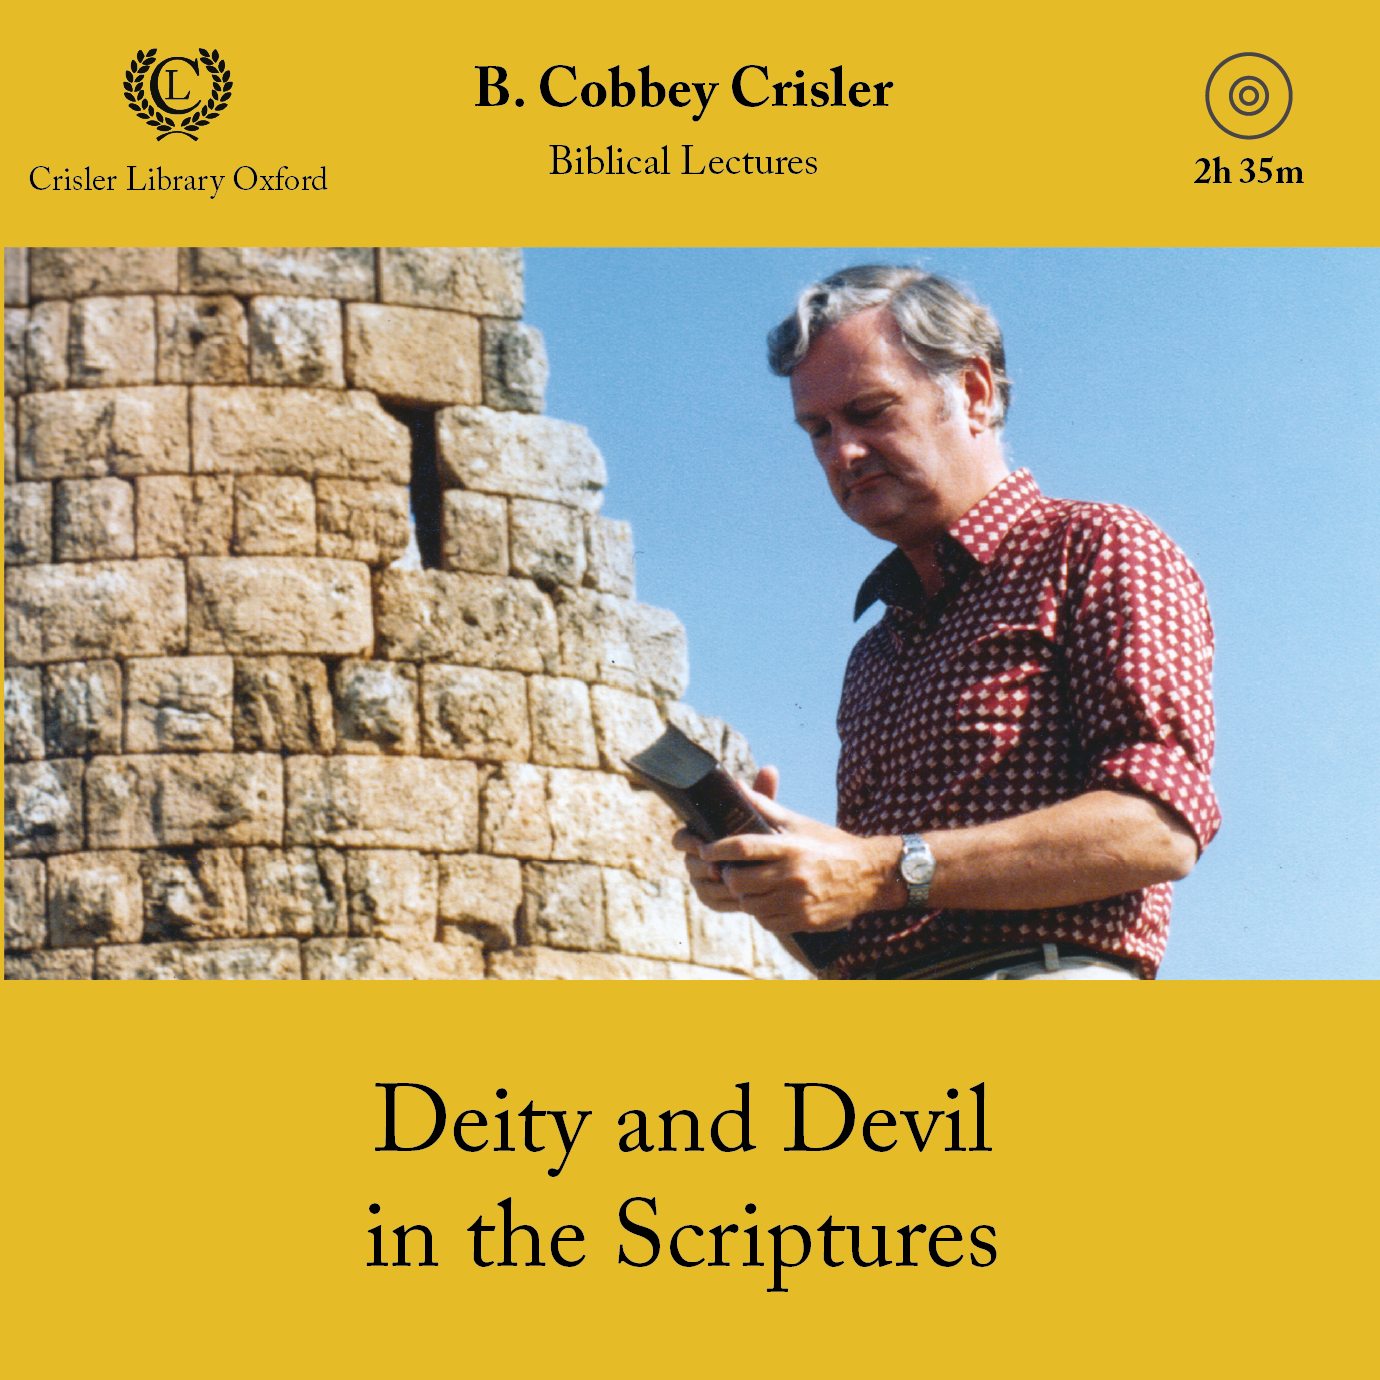 Deity and Devil in the Scriptures